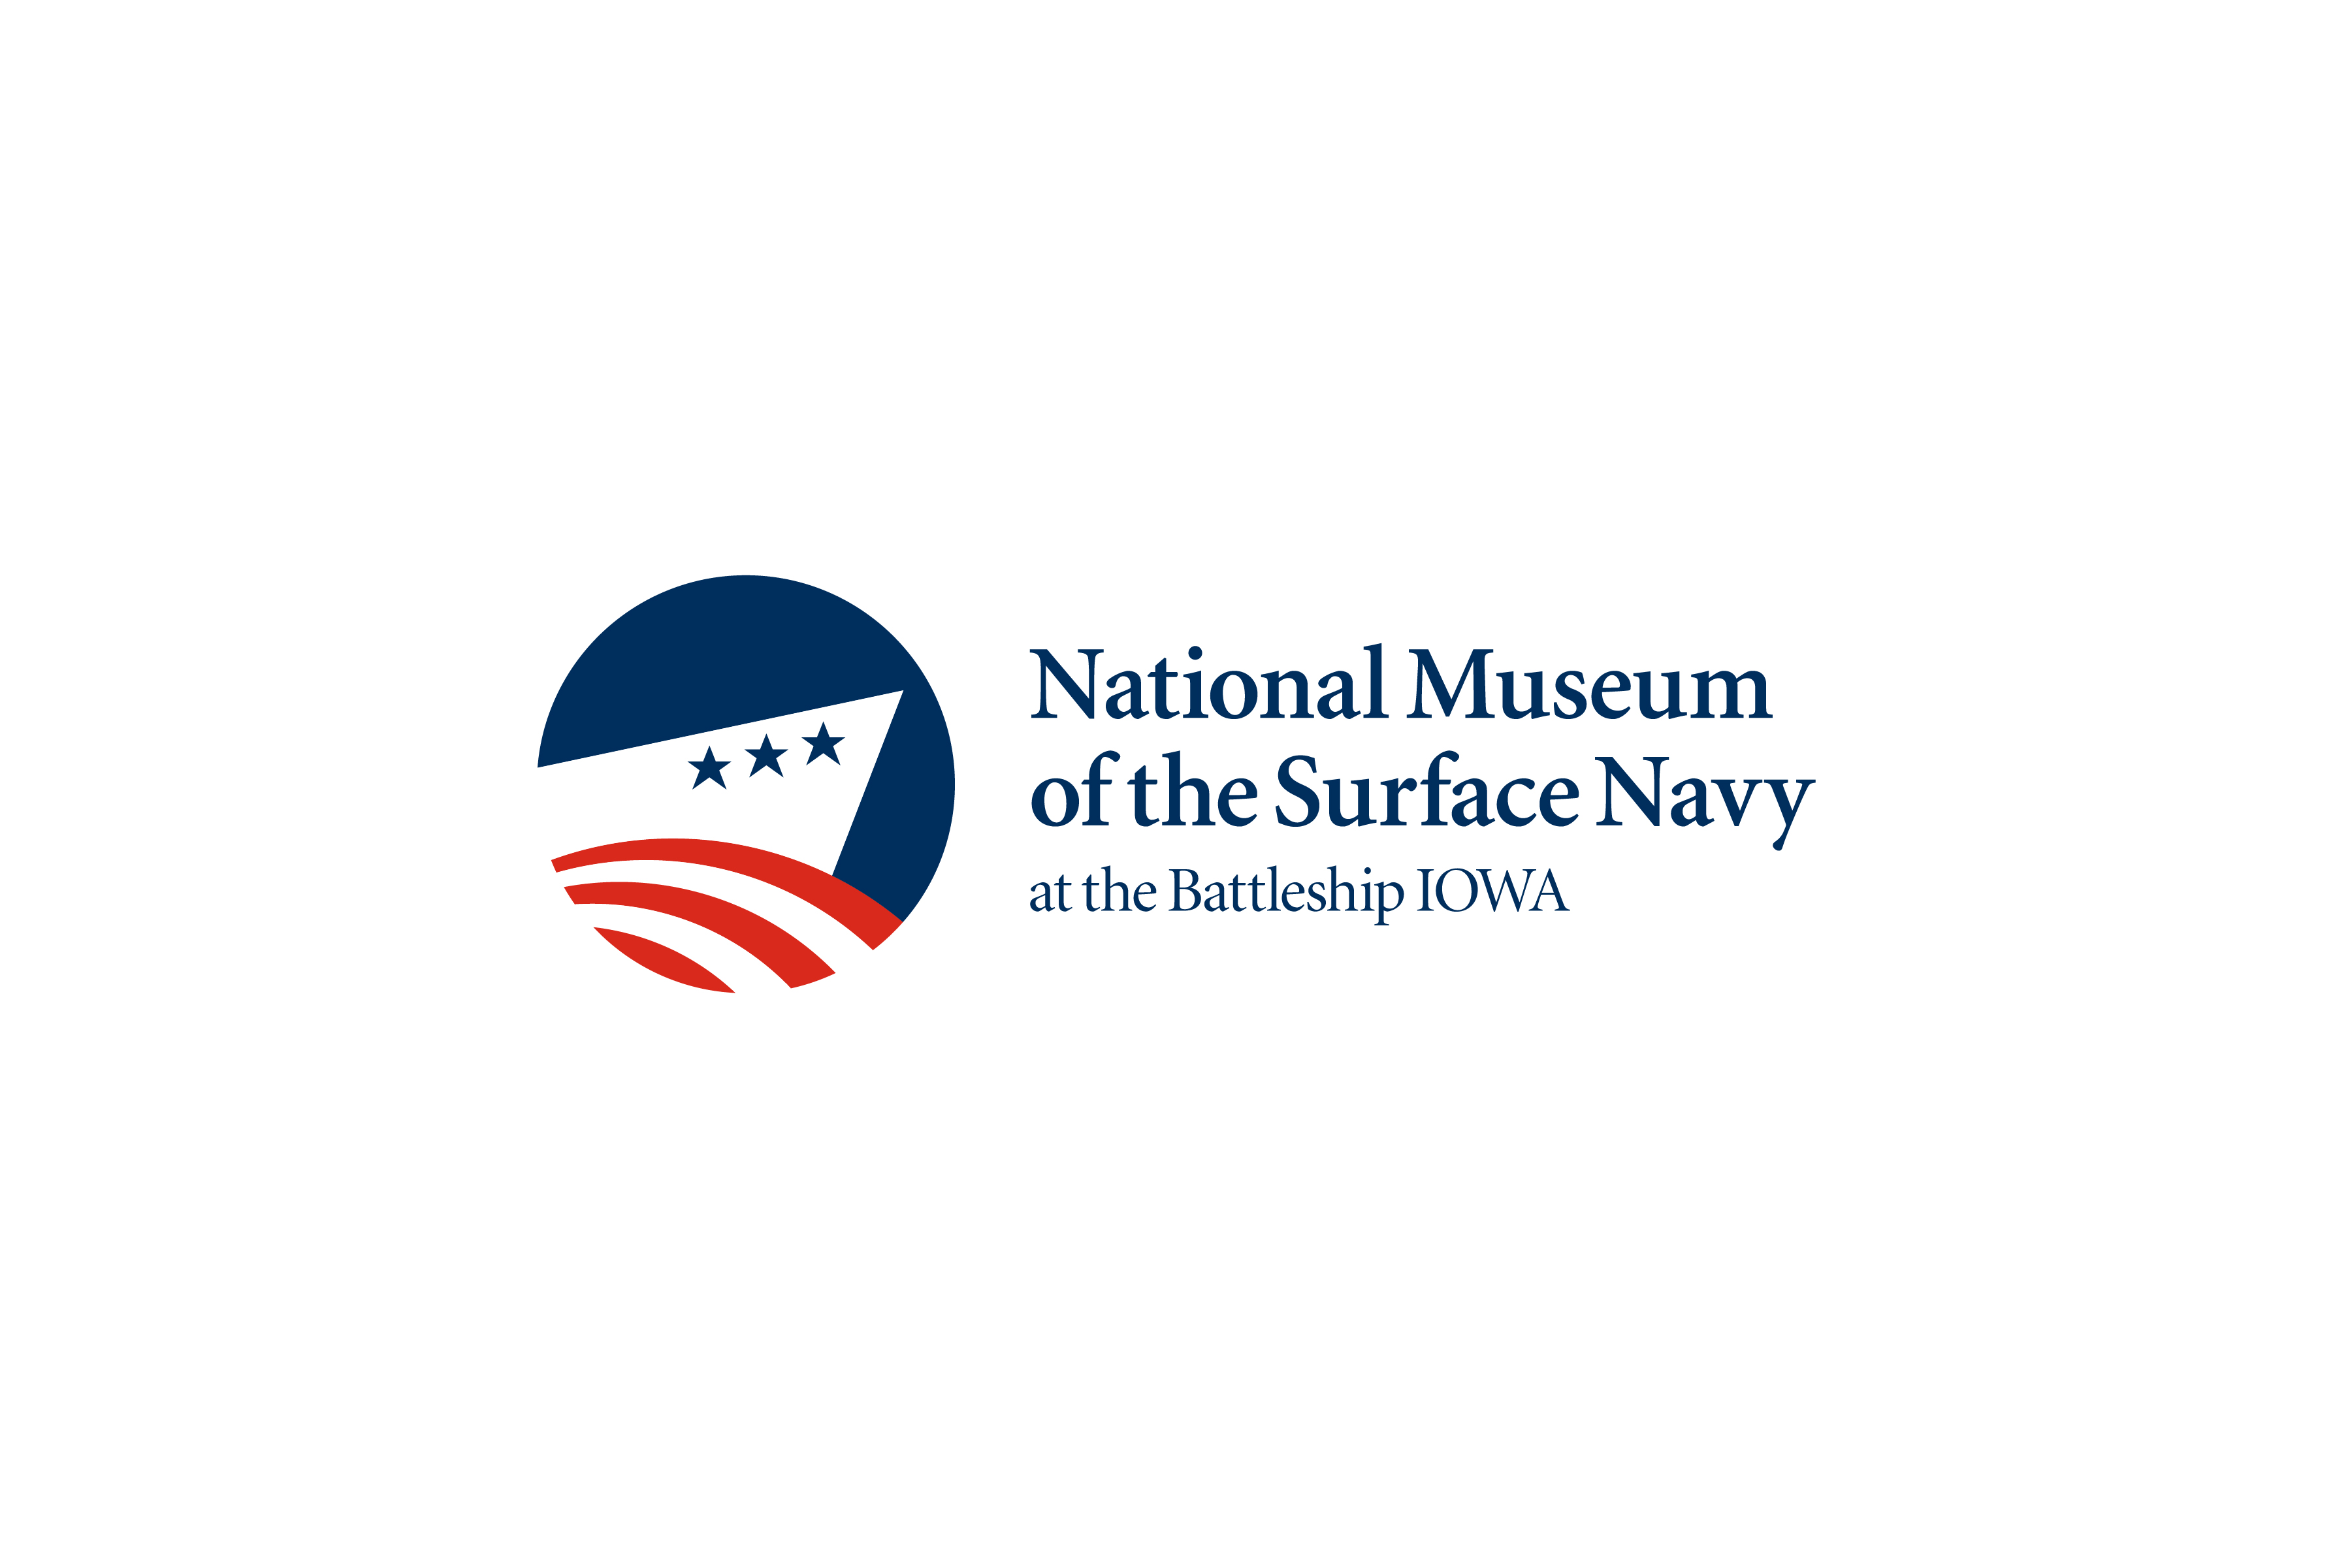 Visual Identity for National Museum of the Surface Navy